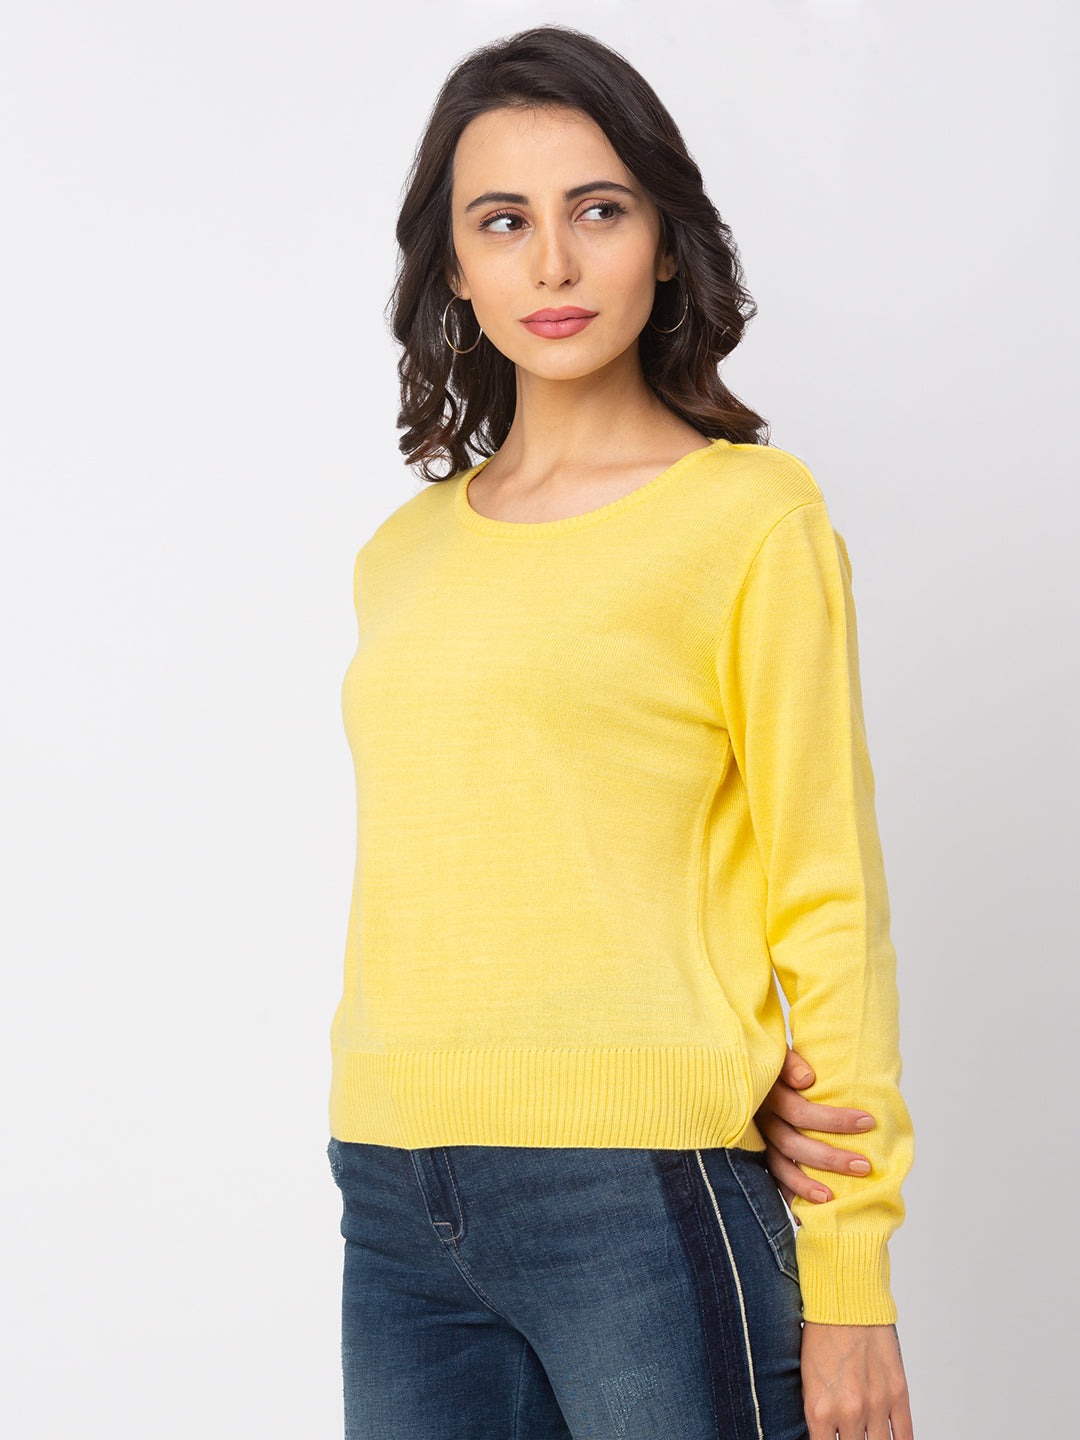 Globus Lemon Solid Sweater-4